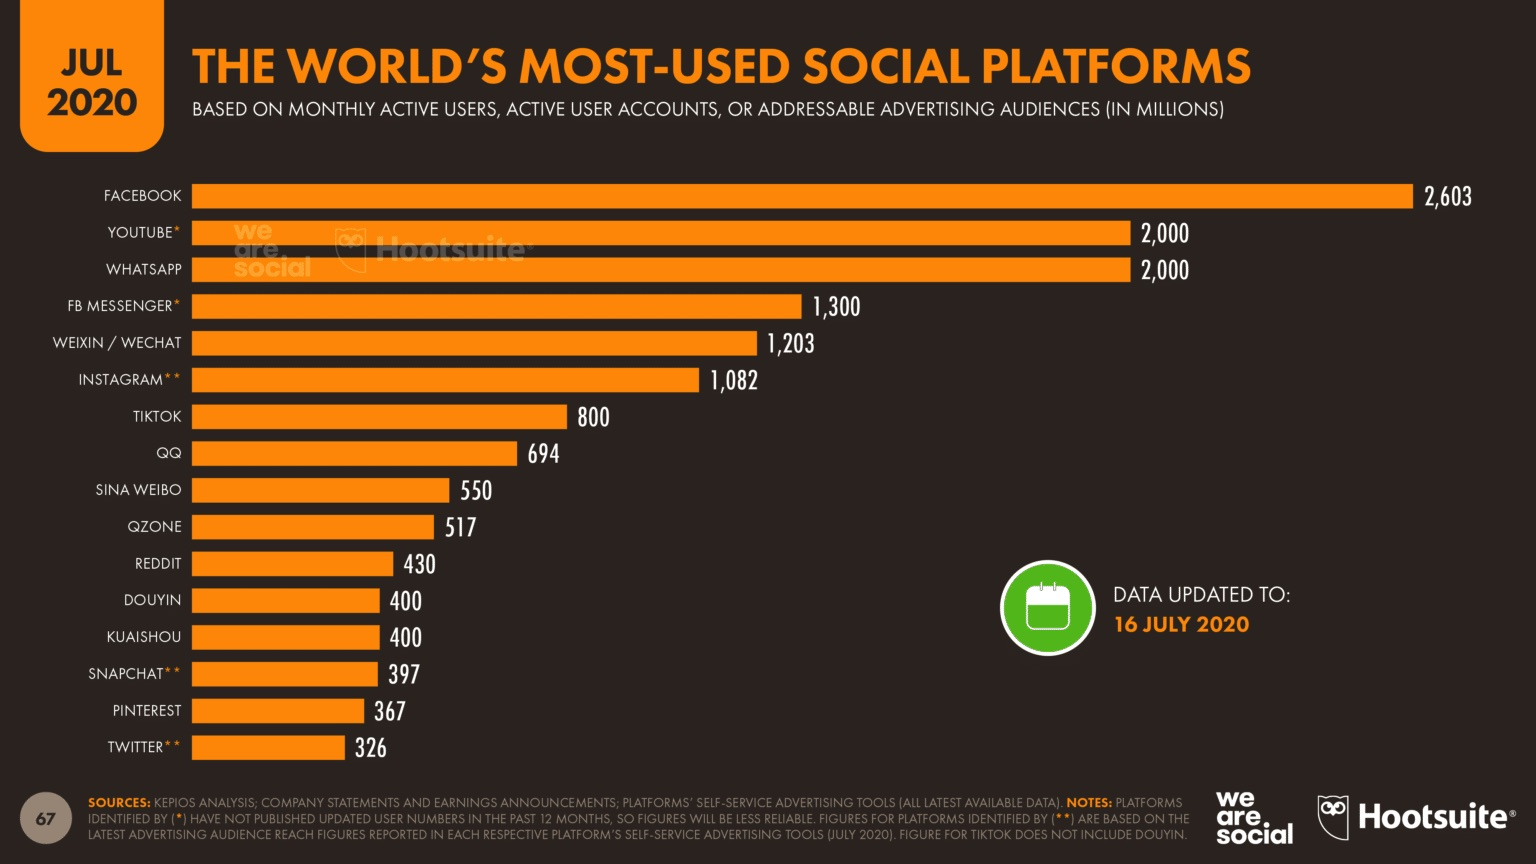 The World's Most-Used Social Platforms July 2020